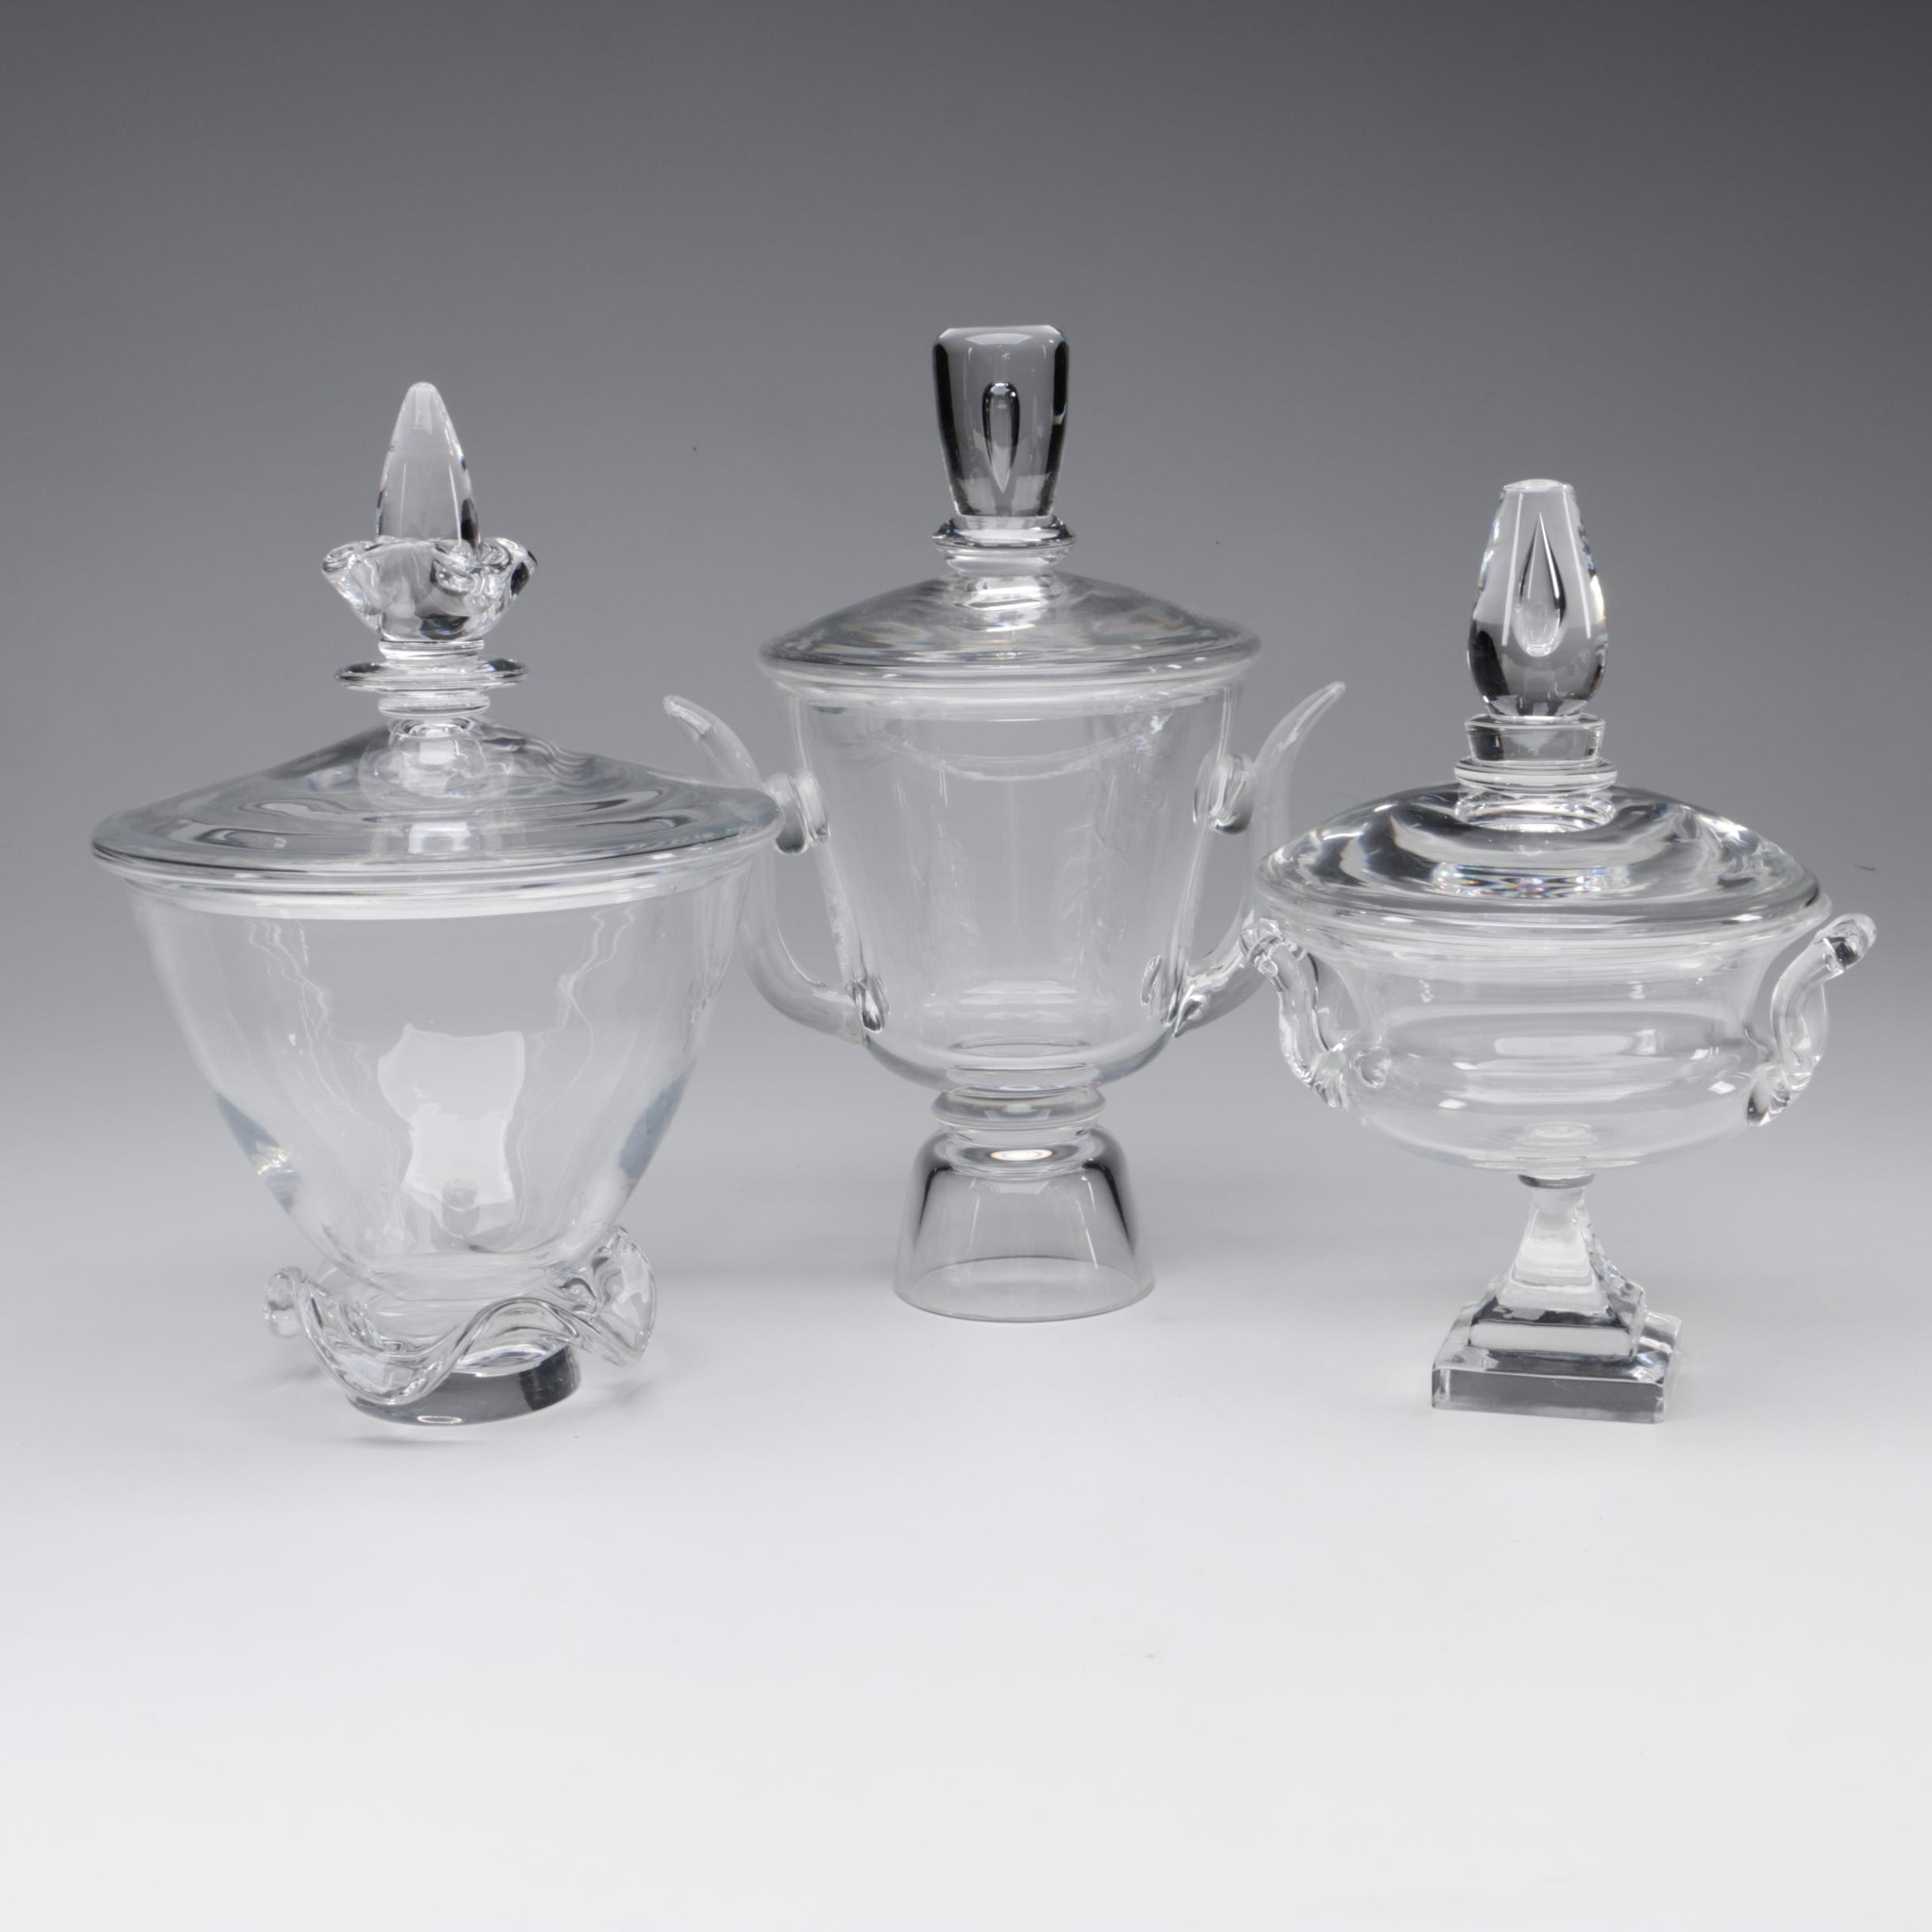 Steuben Art Glass Covered Jars, Mid/Late 20th Century